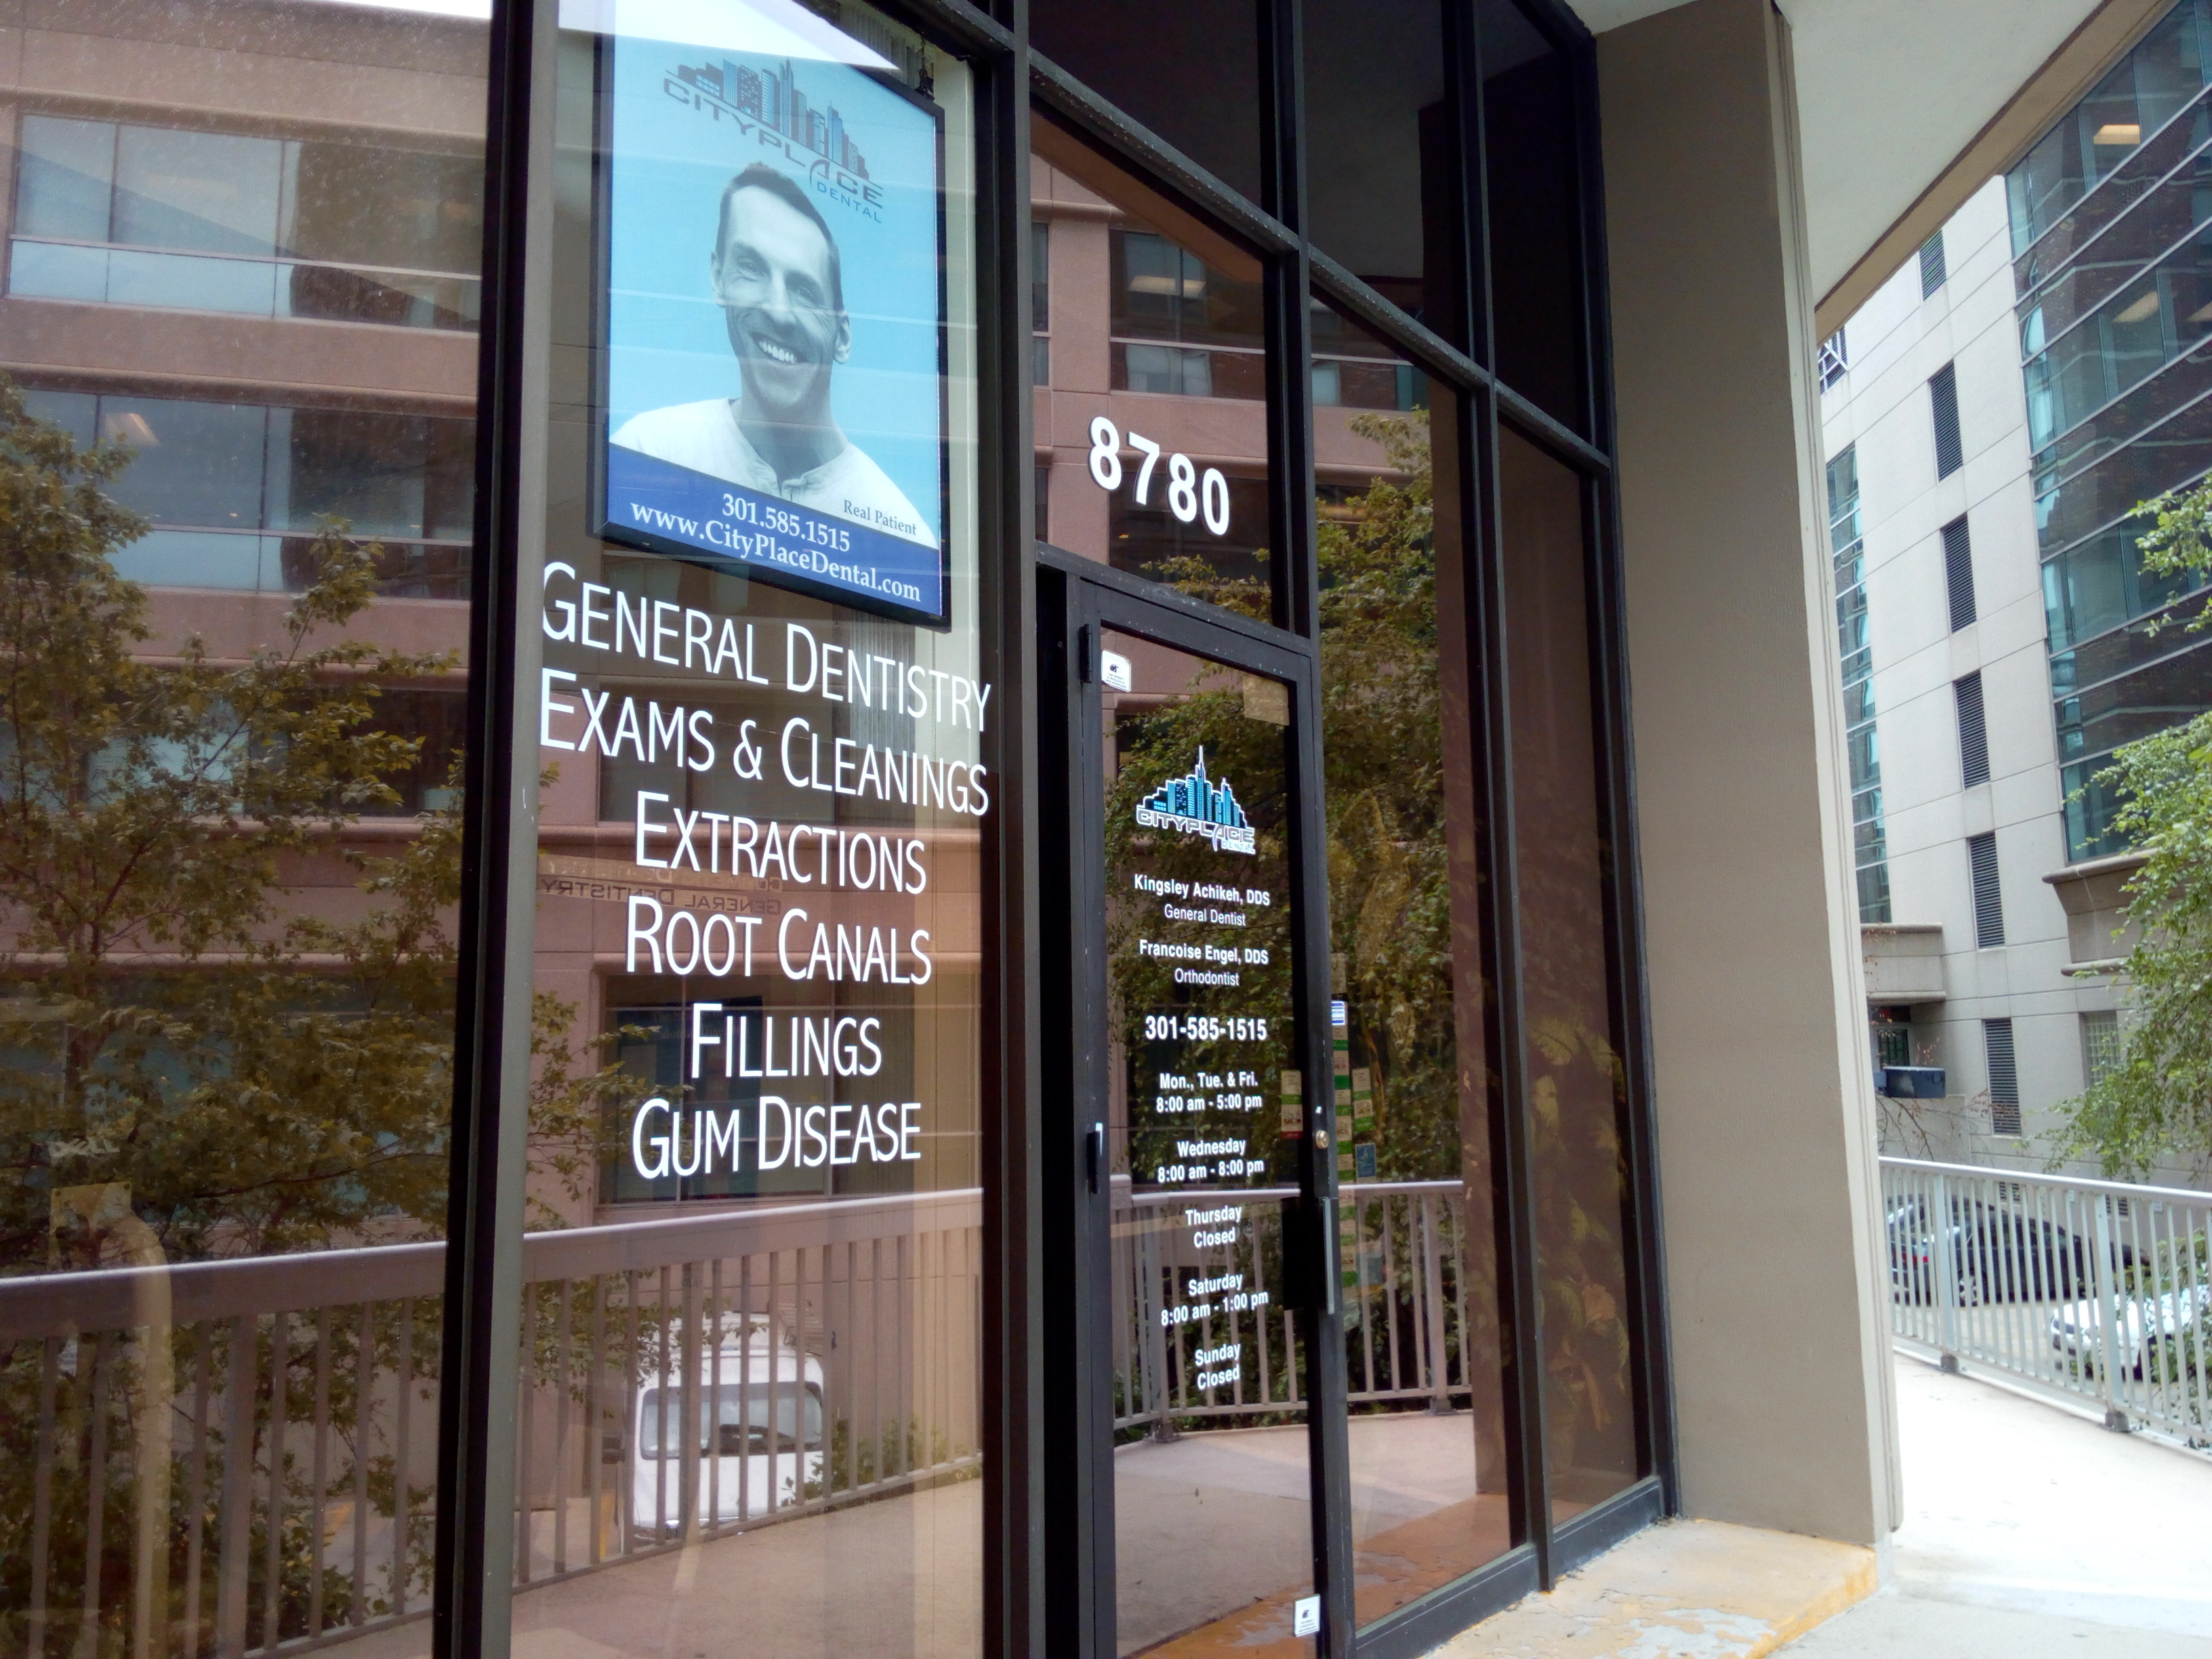 City Place Dental Laser Dentistry-Exterior Window for Dental Office